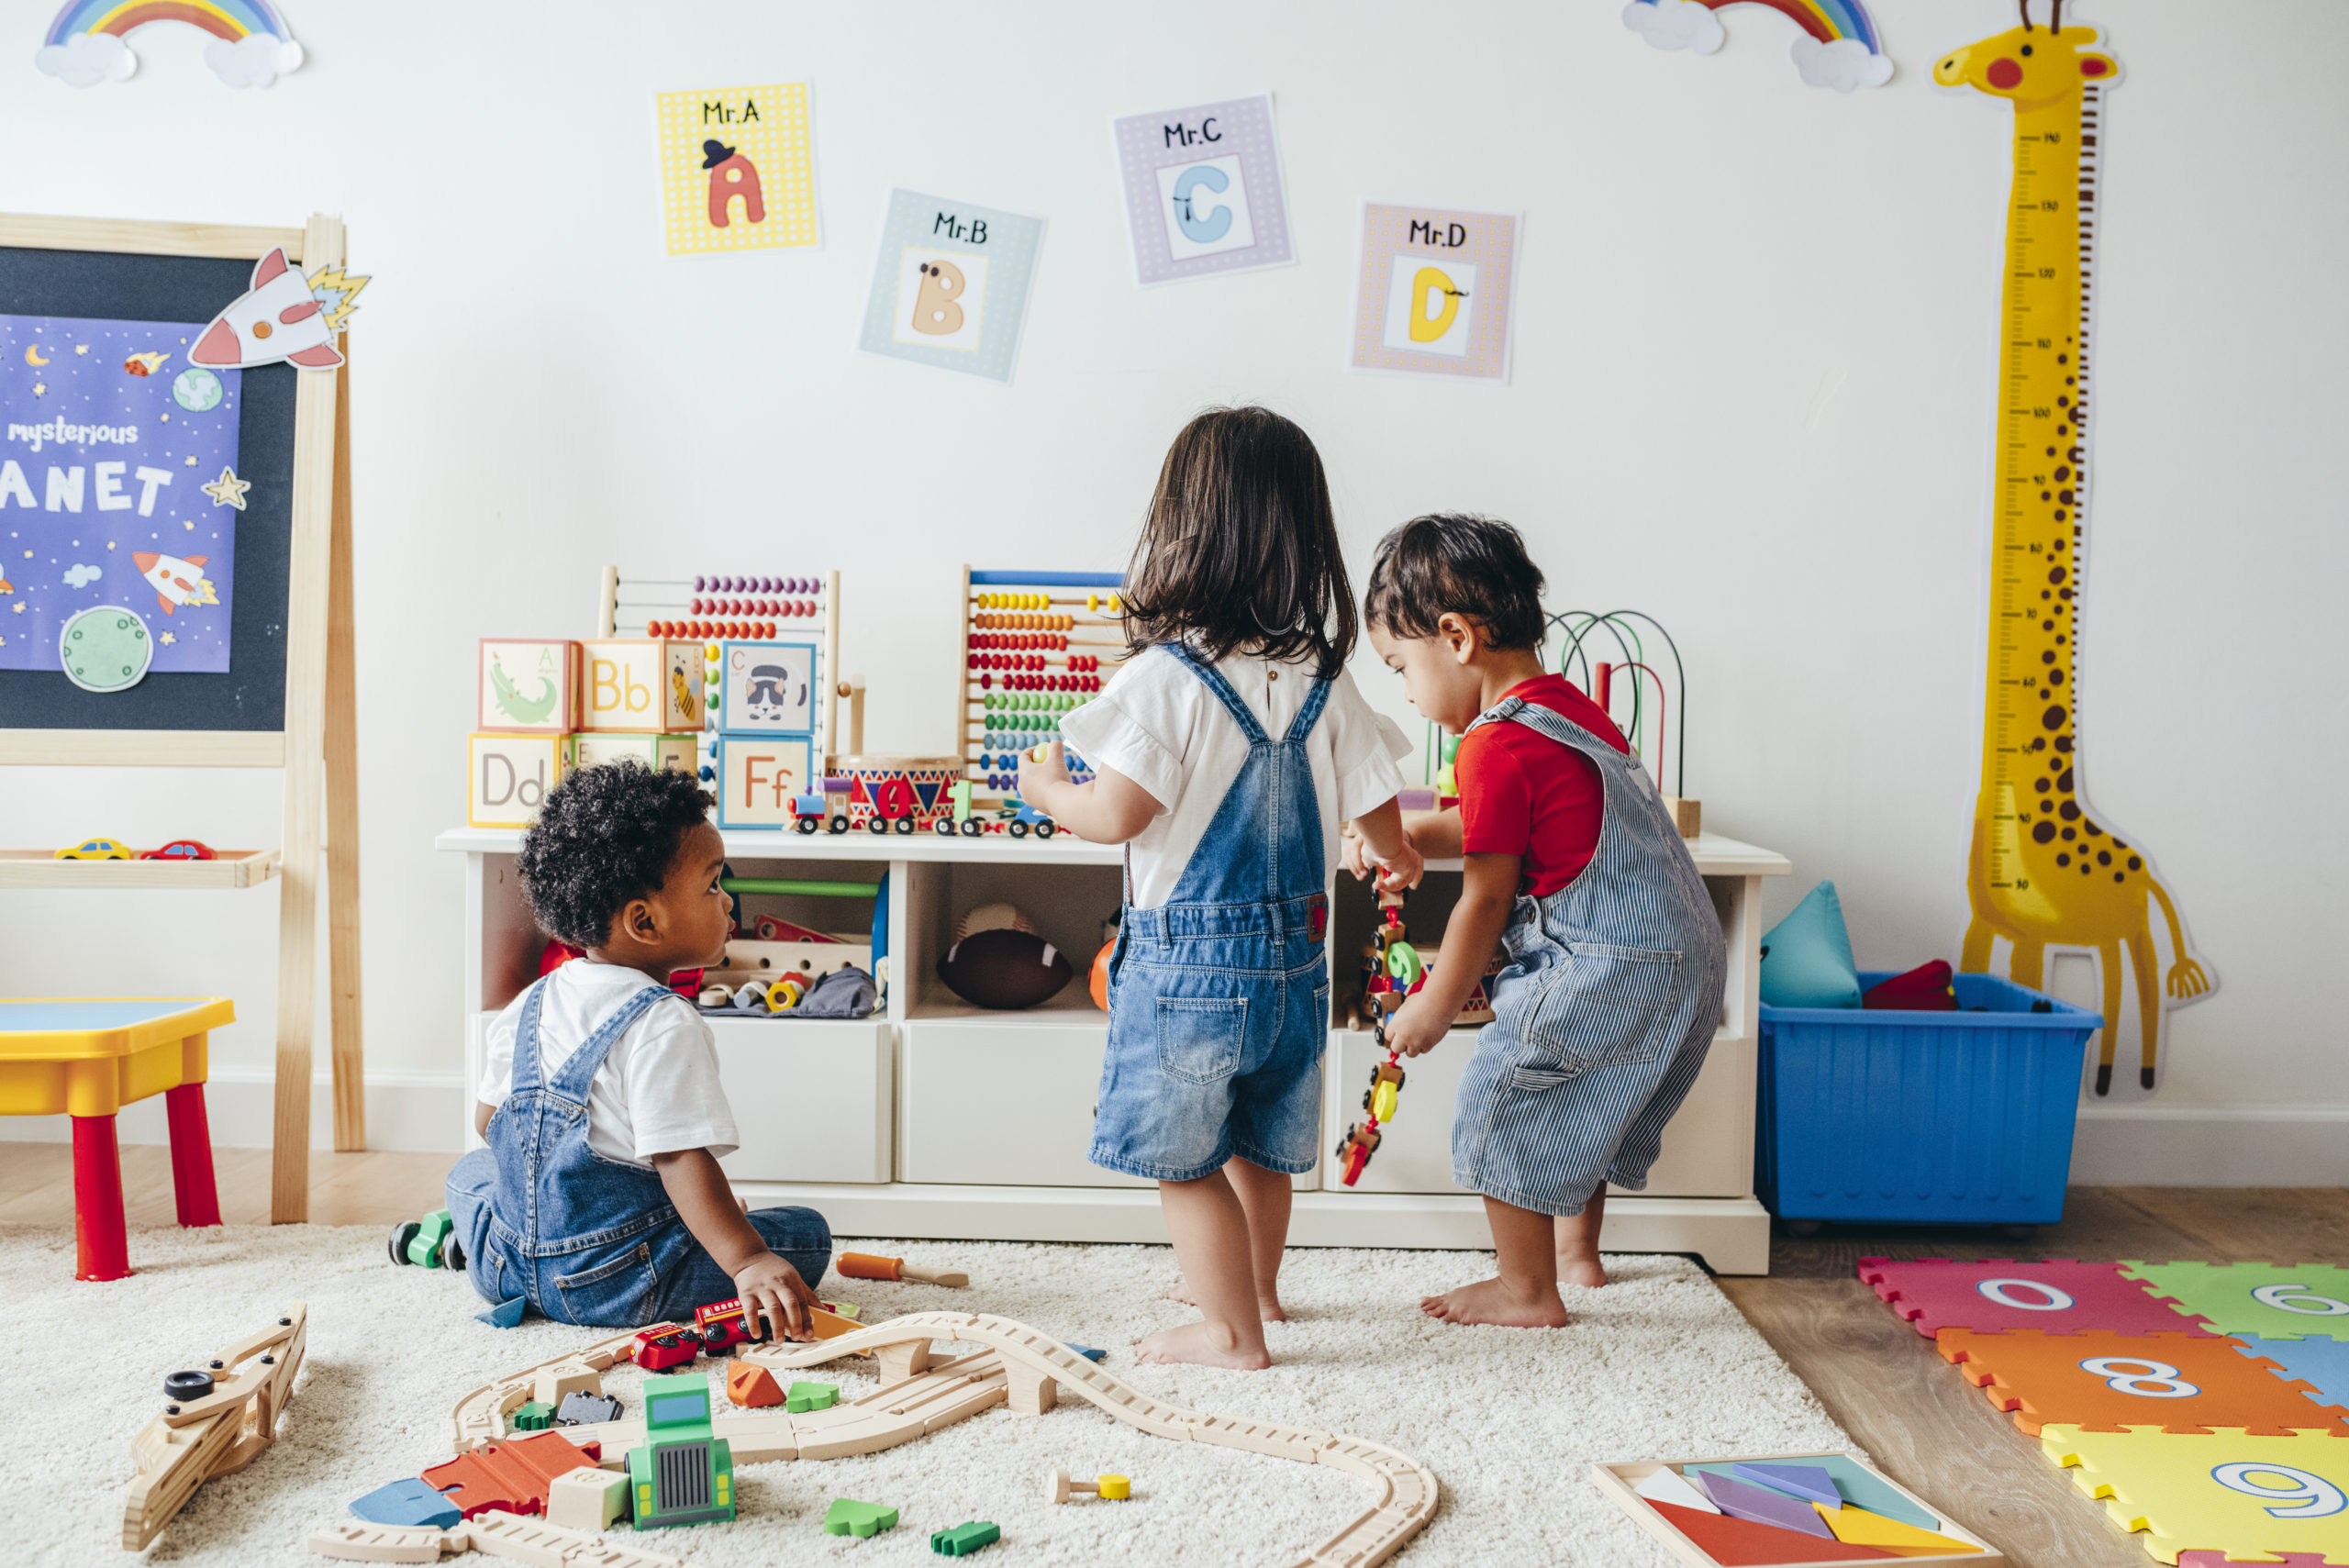 Young children enjoying playing in the playroom